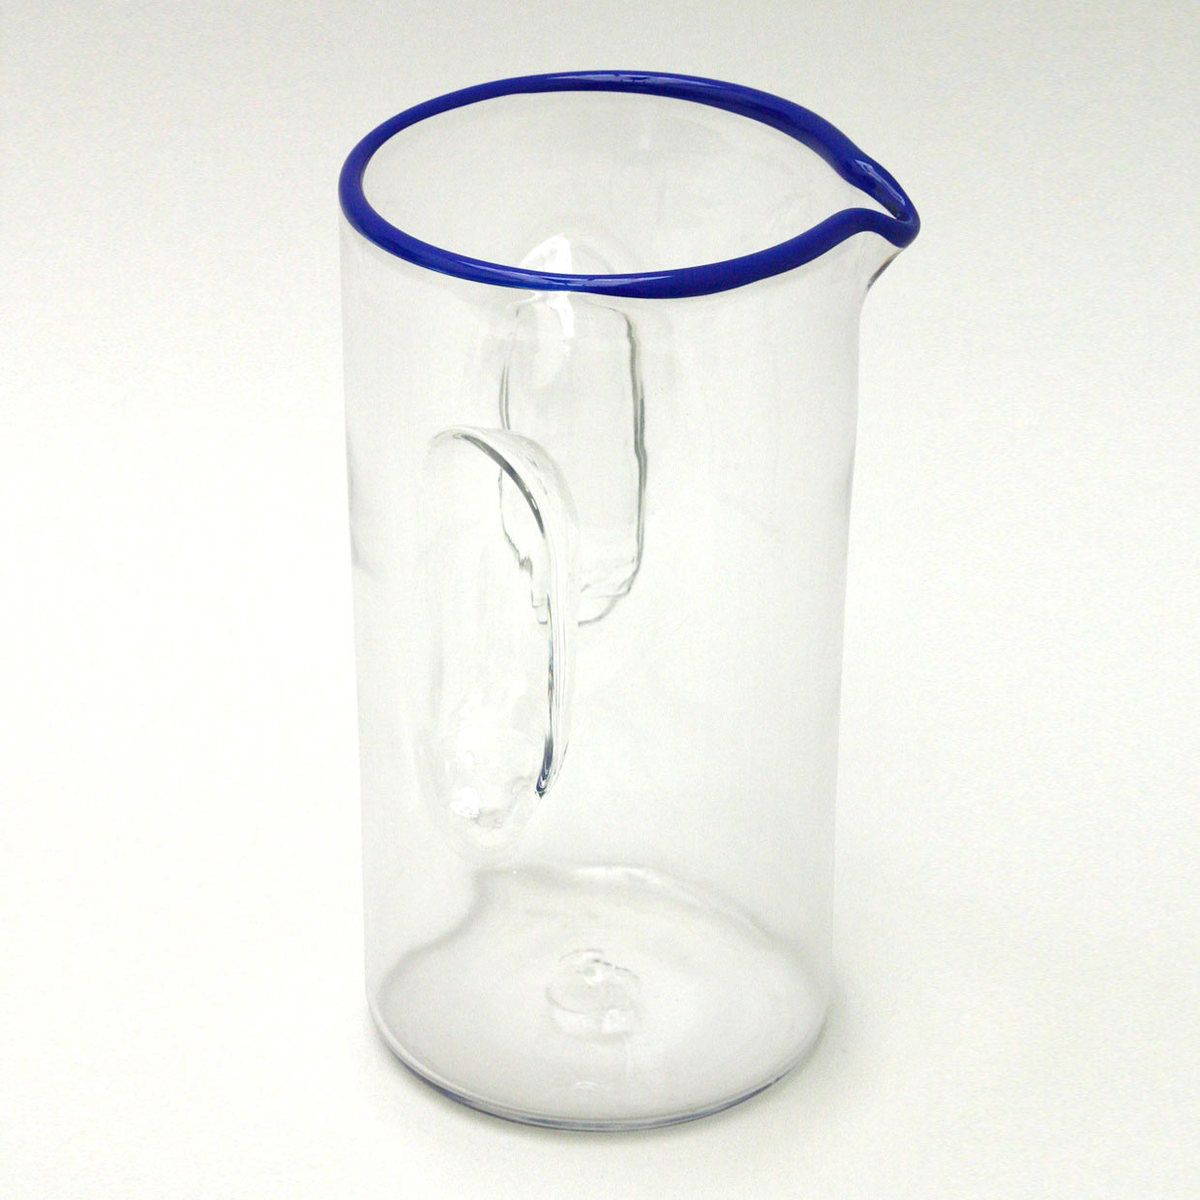 Indentations in the glass provide the grip in this pitcher.